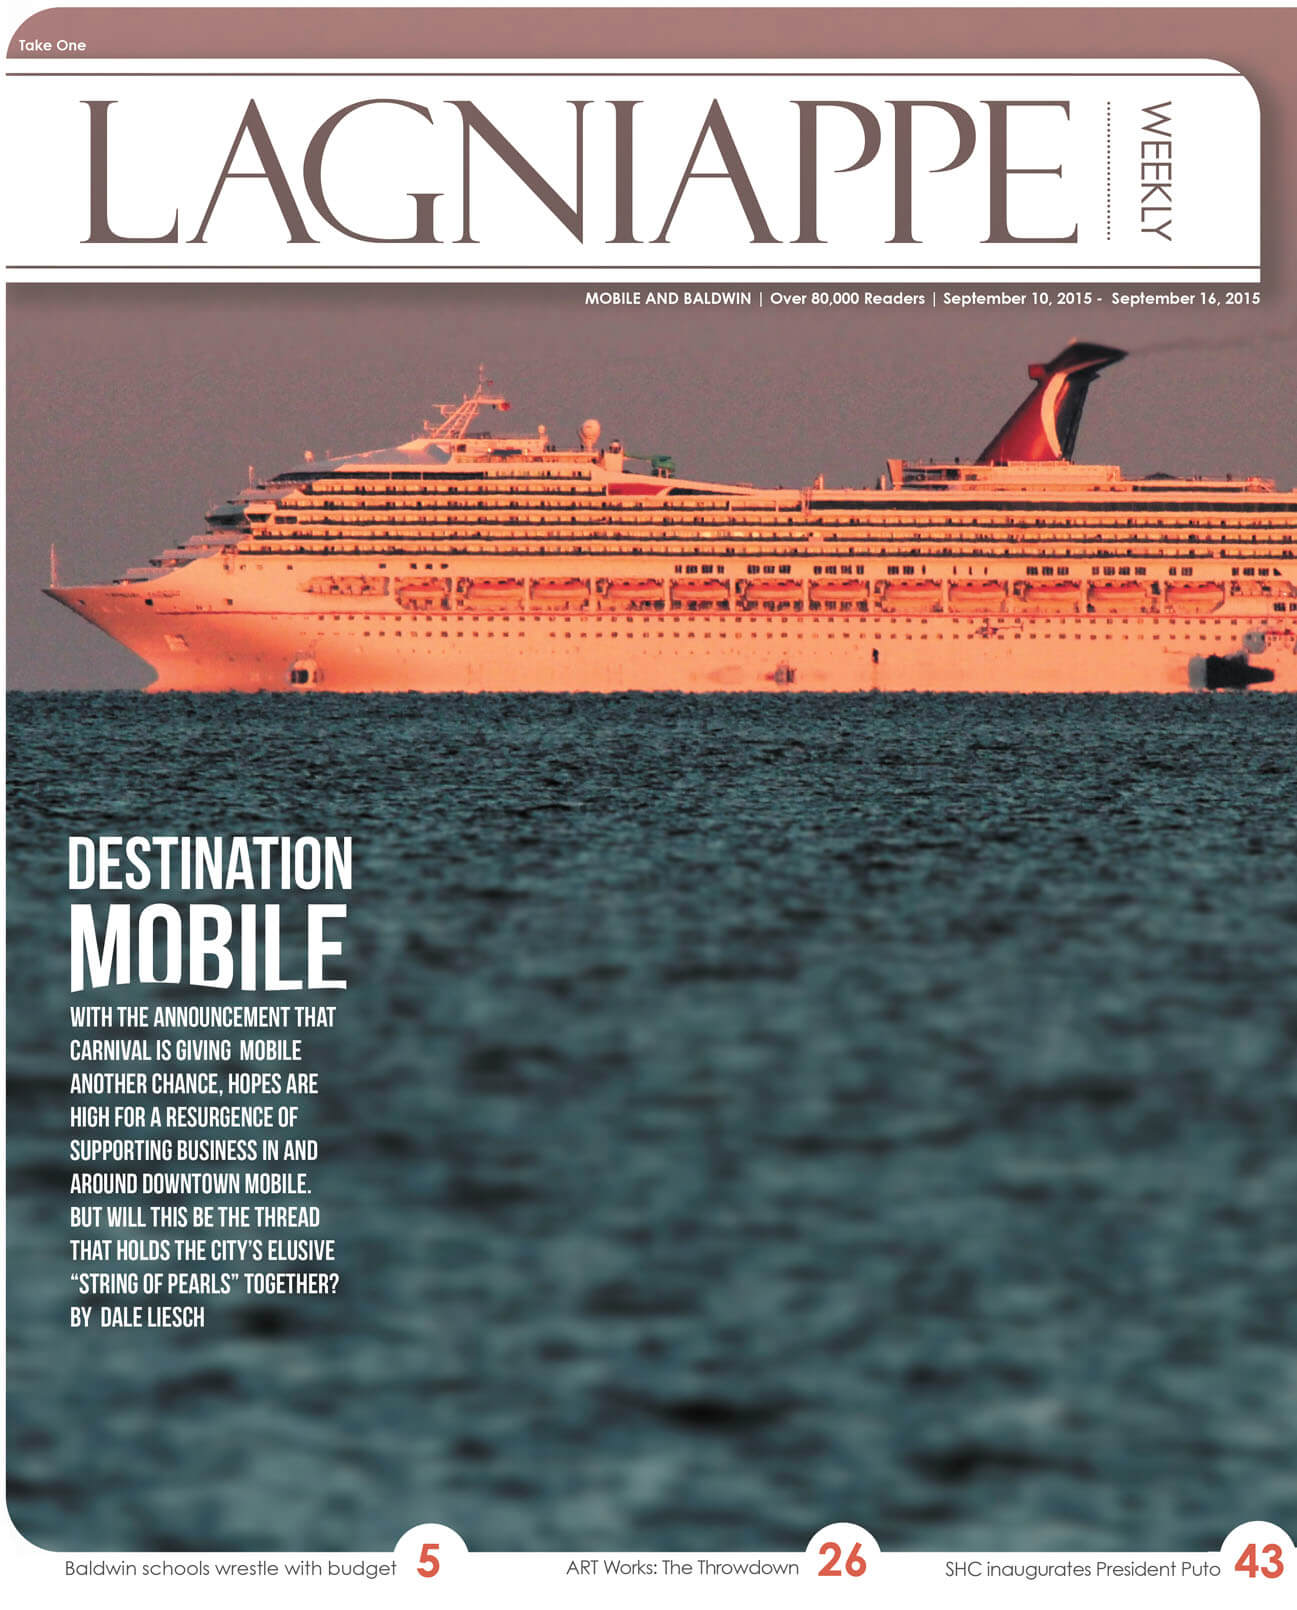 COVER STORY: Contract negotiations for a new cruise ship nearly finalized